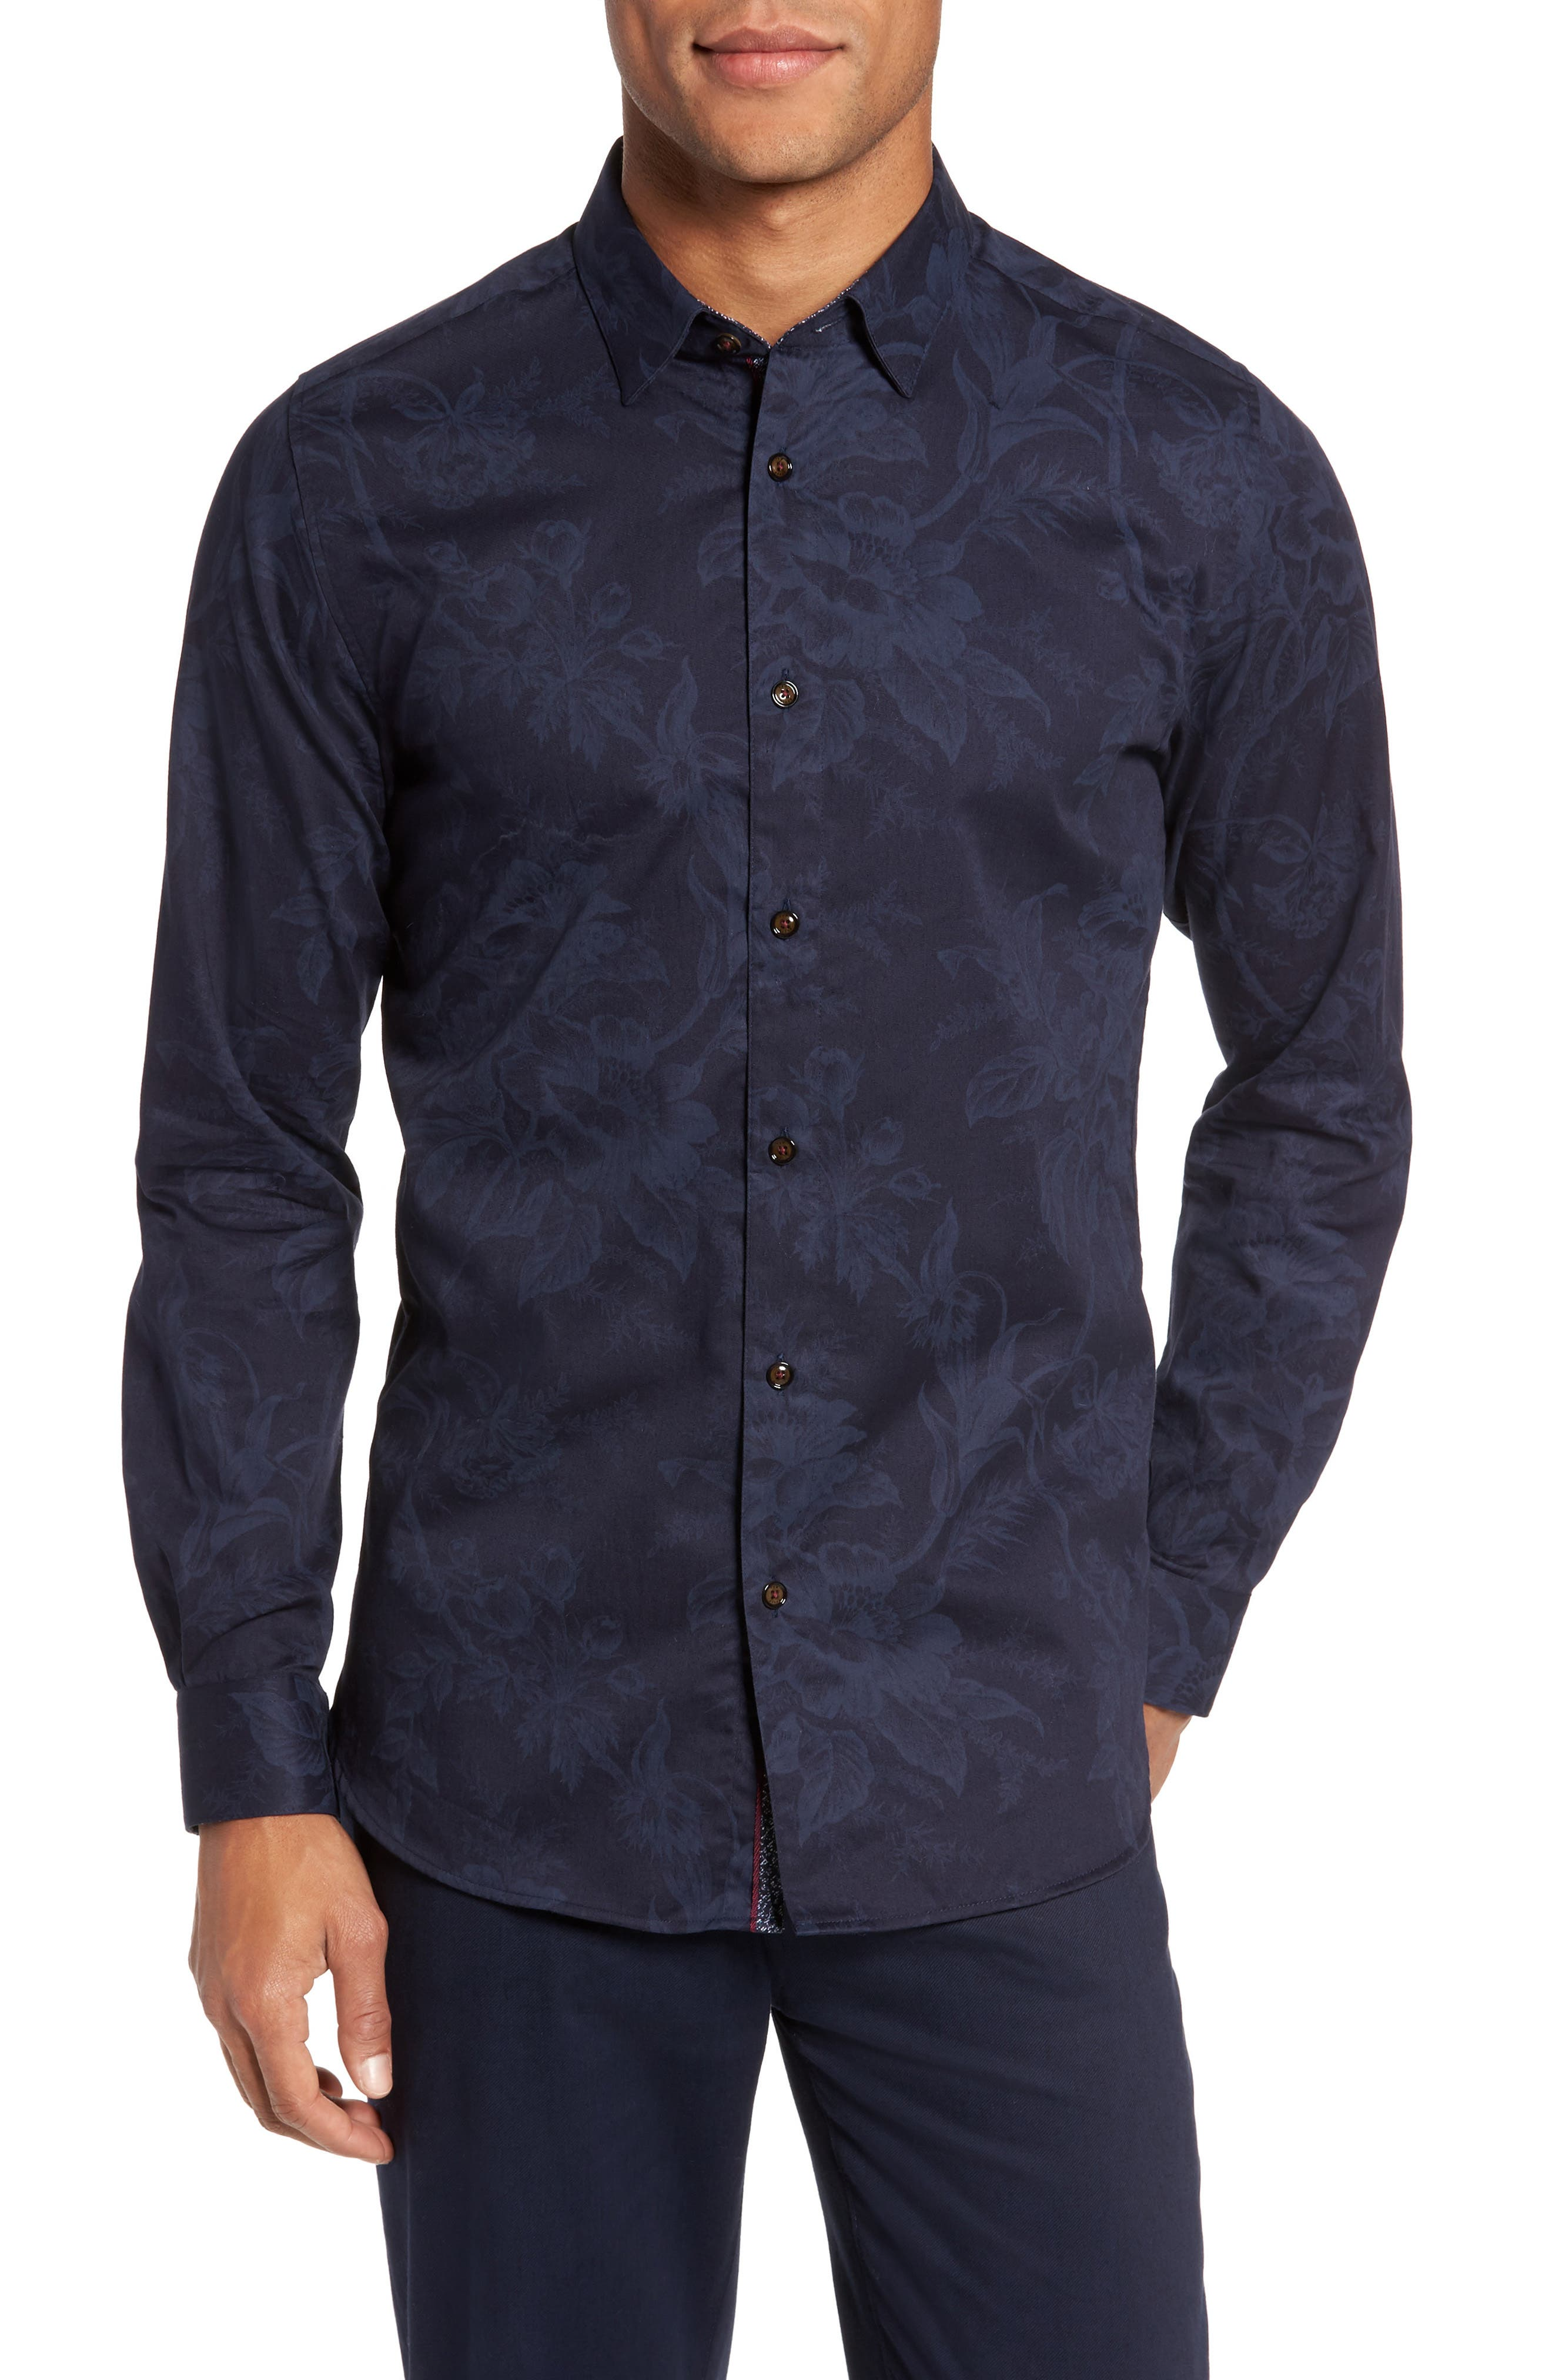 Main Image - Ted Baker London Modern Slim Fit Floral Print Sport Shirt